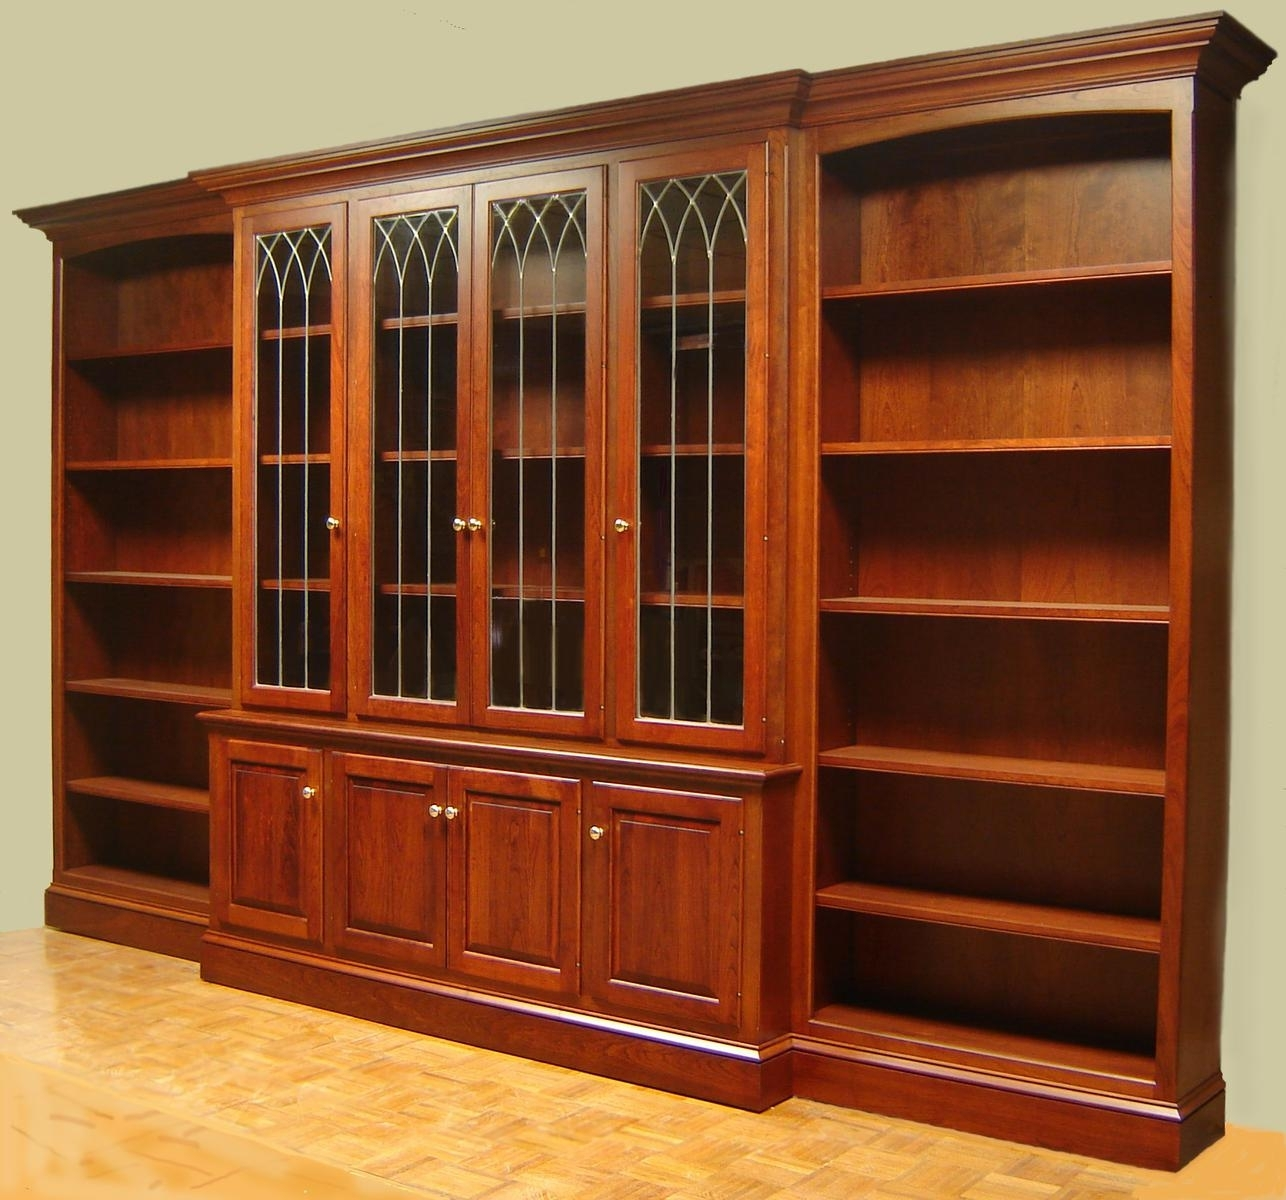 Appealing Wood Bookcase With Doors Solid Wood Construction Natural For Large Solid Wood Bookcase (View 1 of 15)